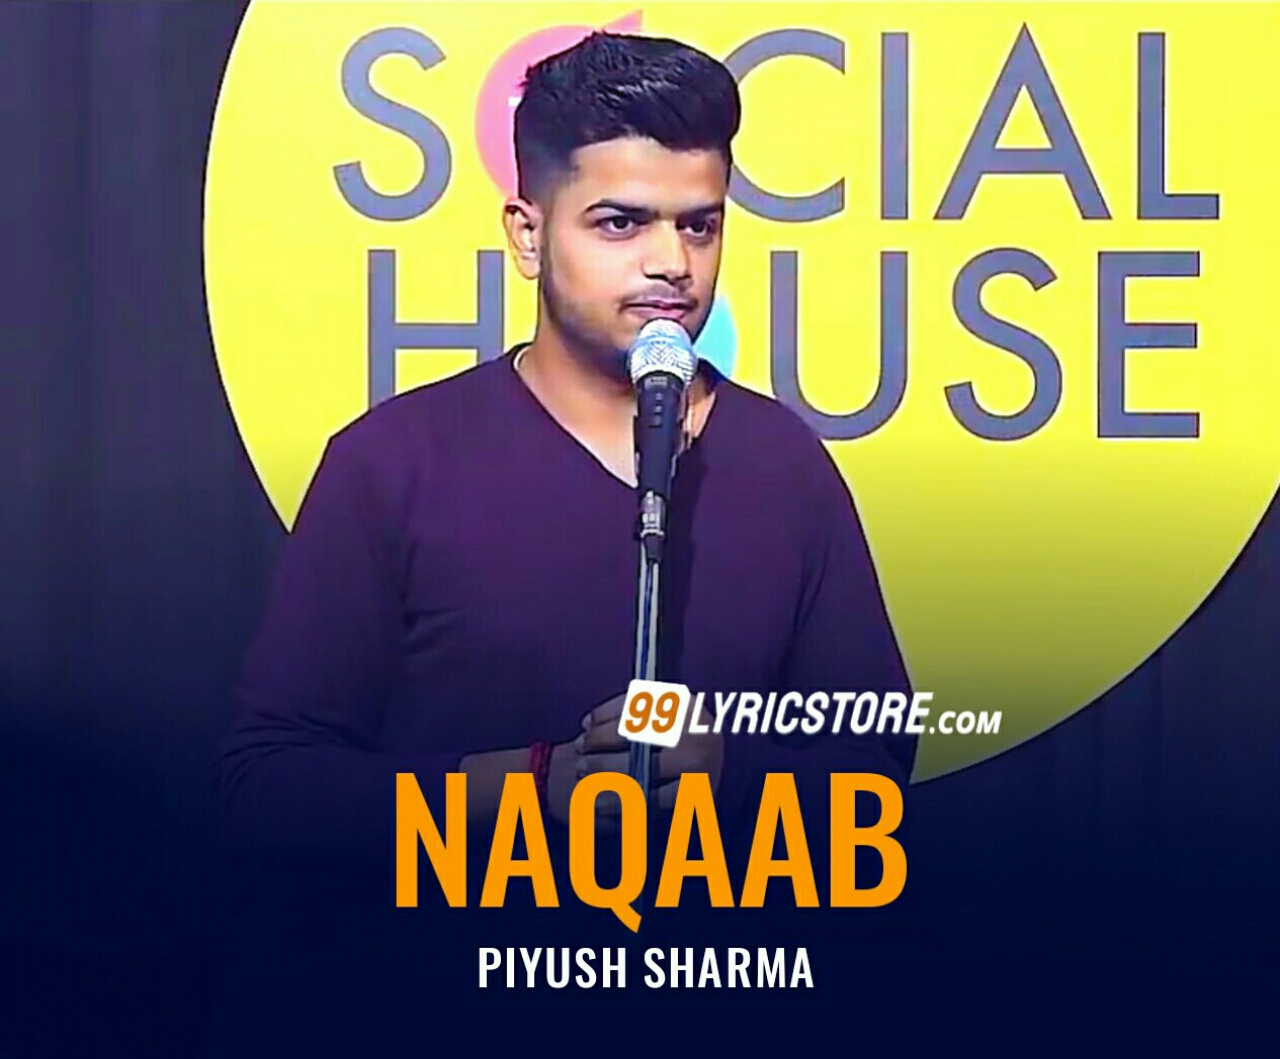 This beautiful Poetry   'Naqaab' has written and performed by Piyush Sharma on The Social House's Plateform.